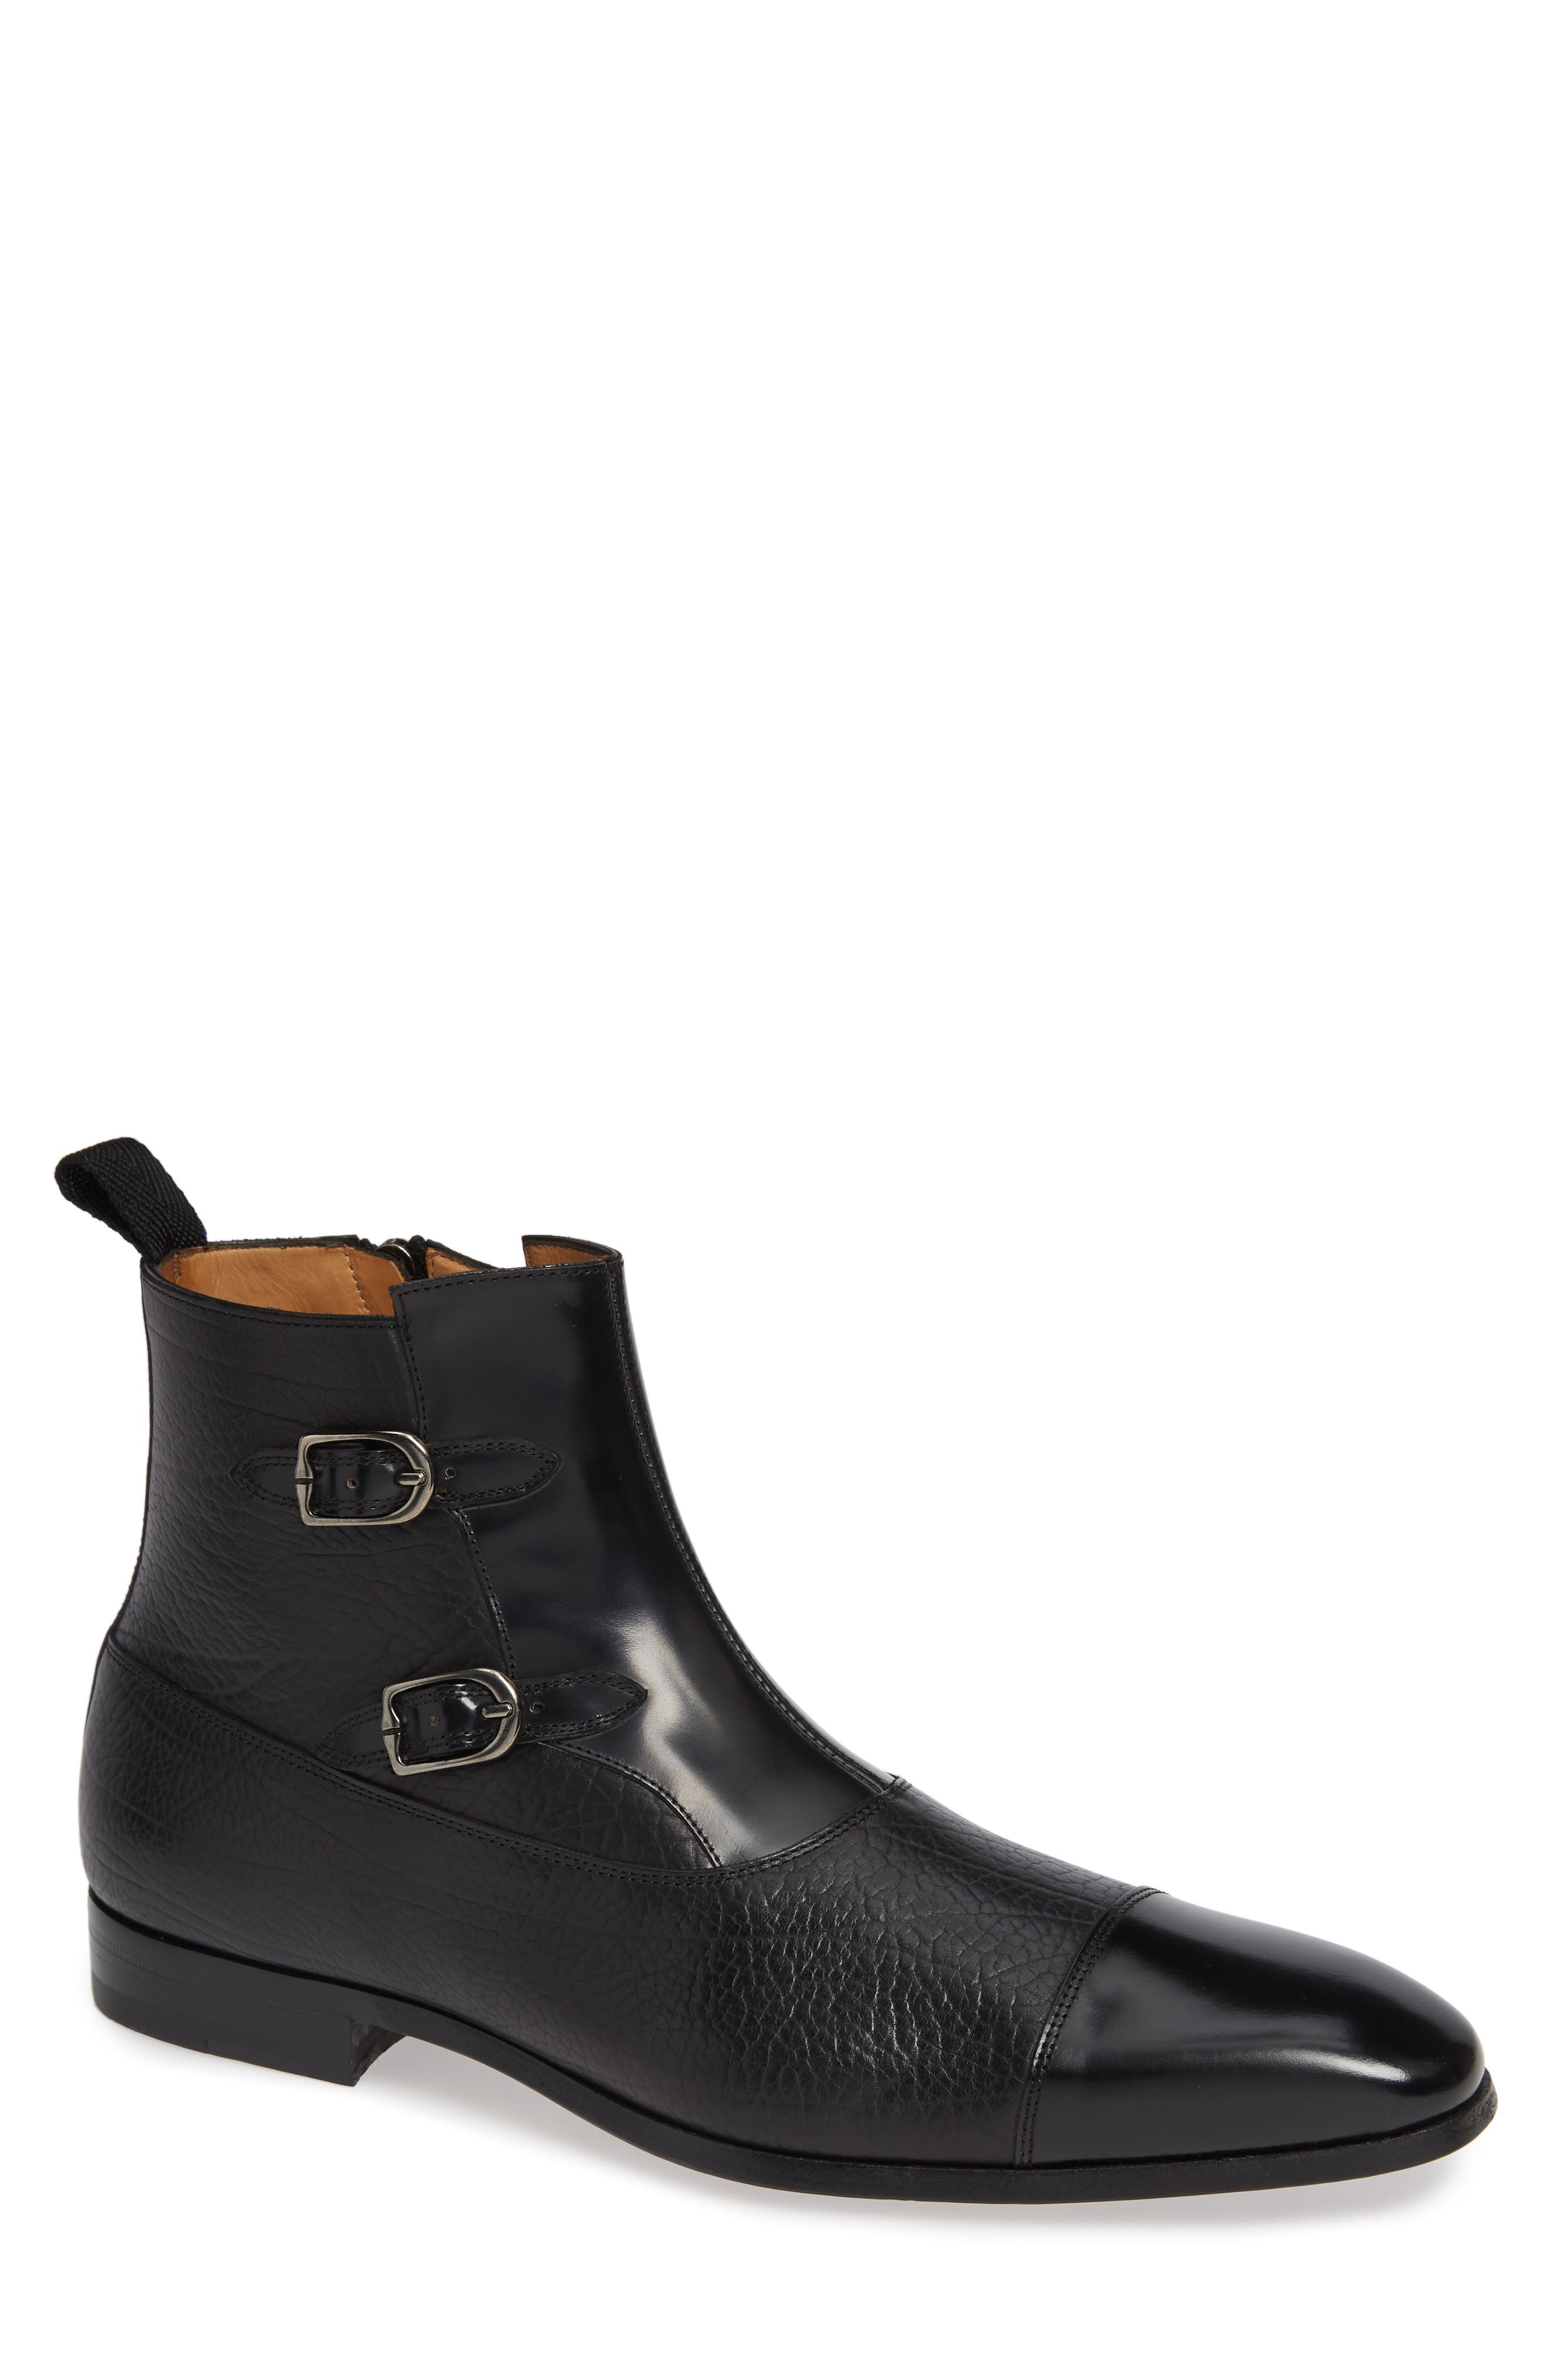 Mezlan Tracy Double Buckle Cap Toe Boot, Black